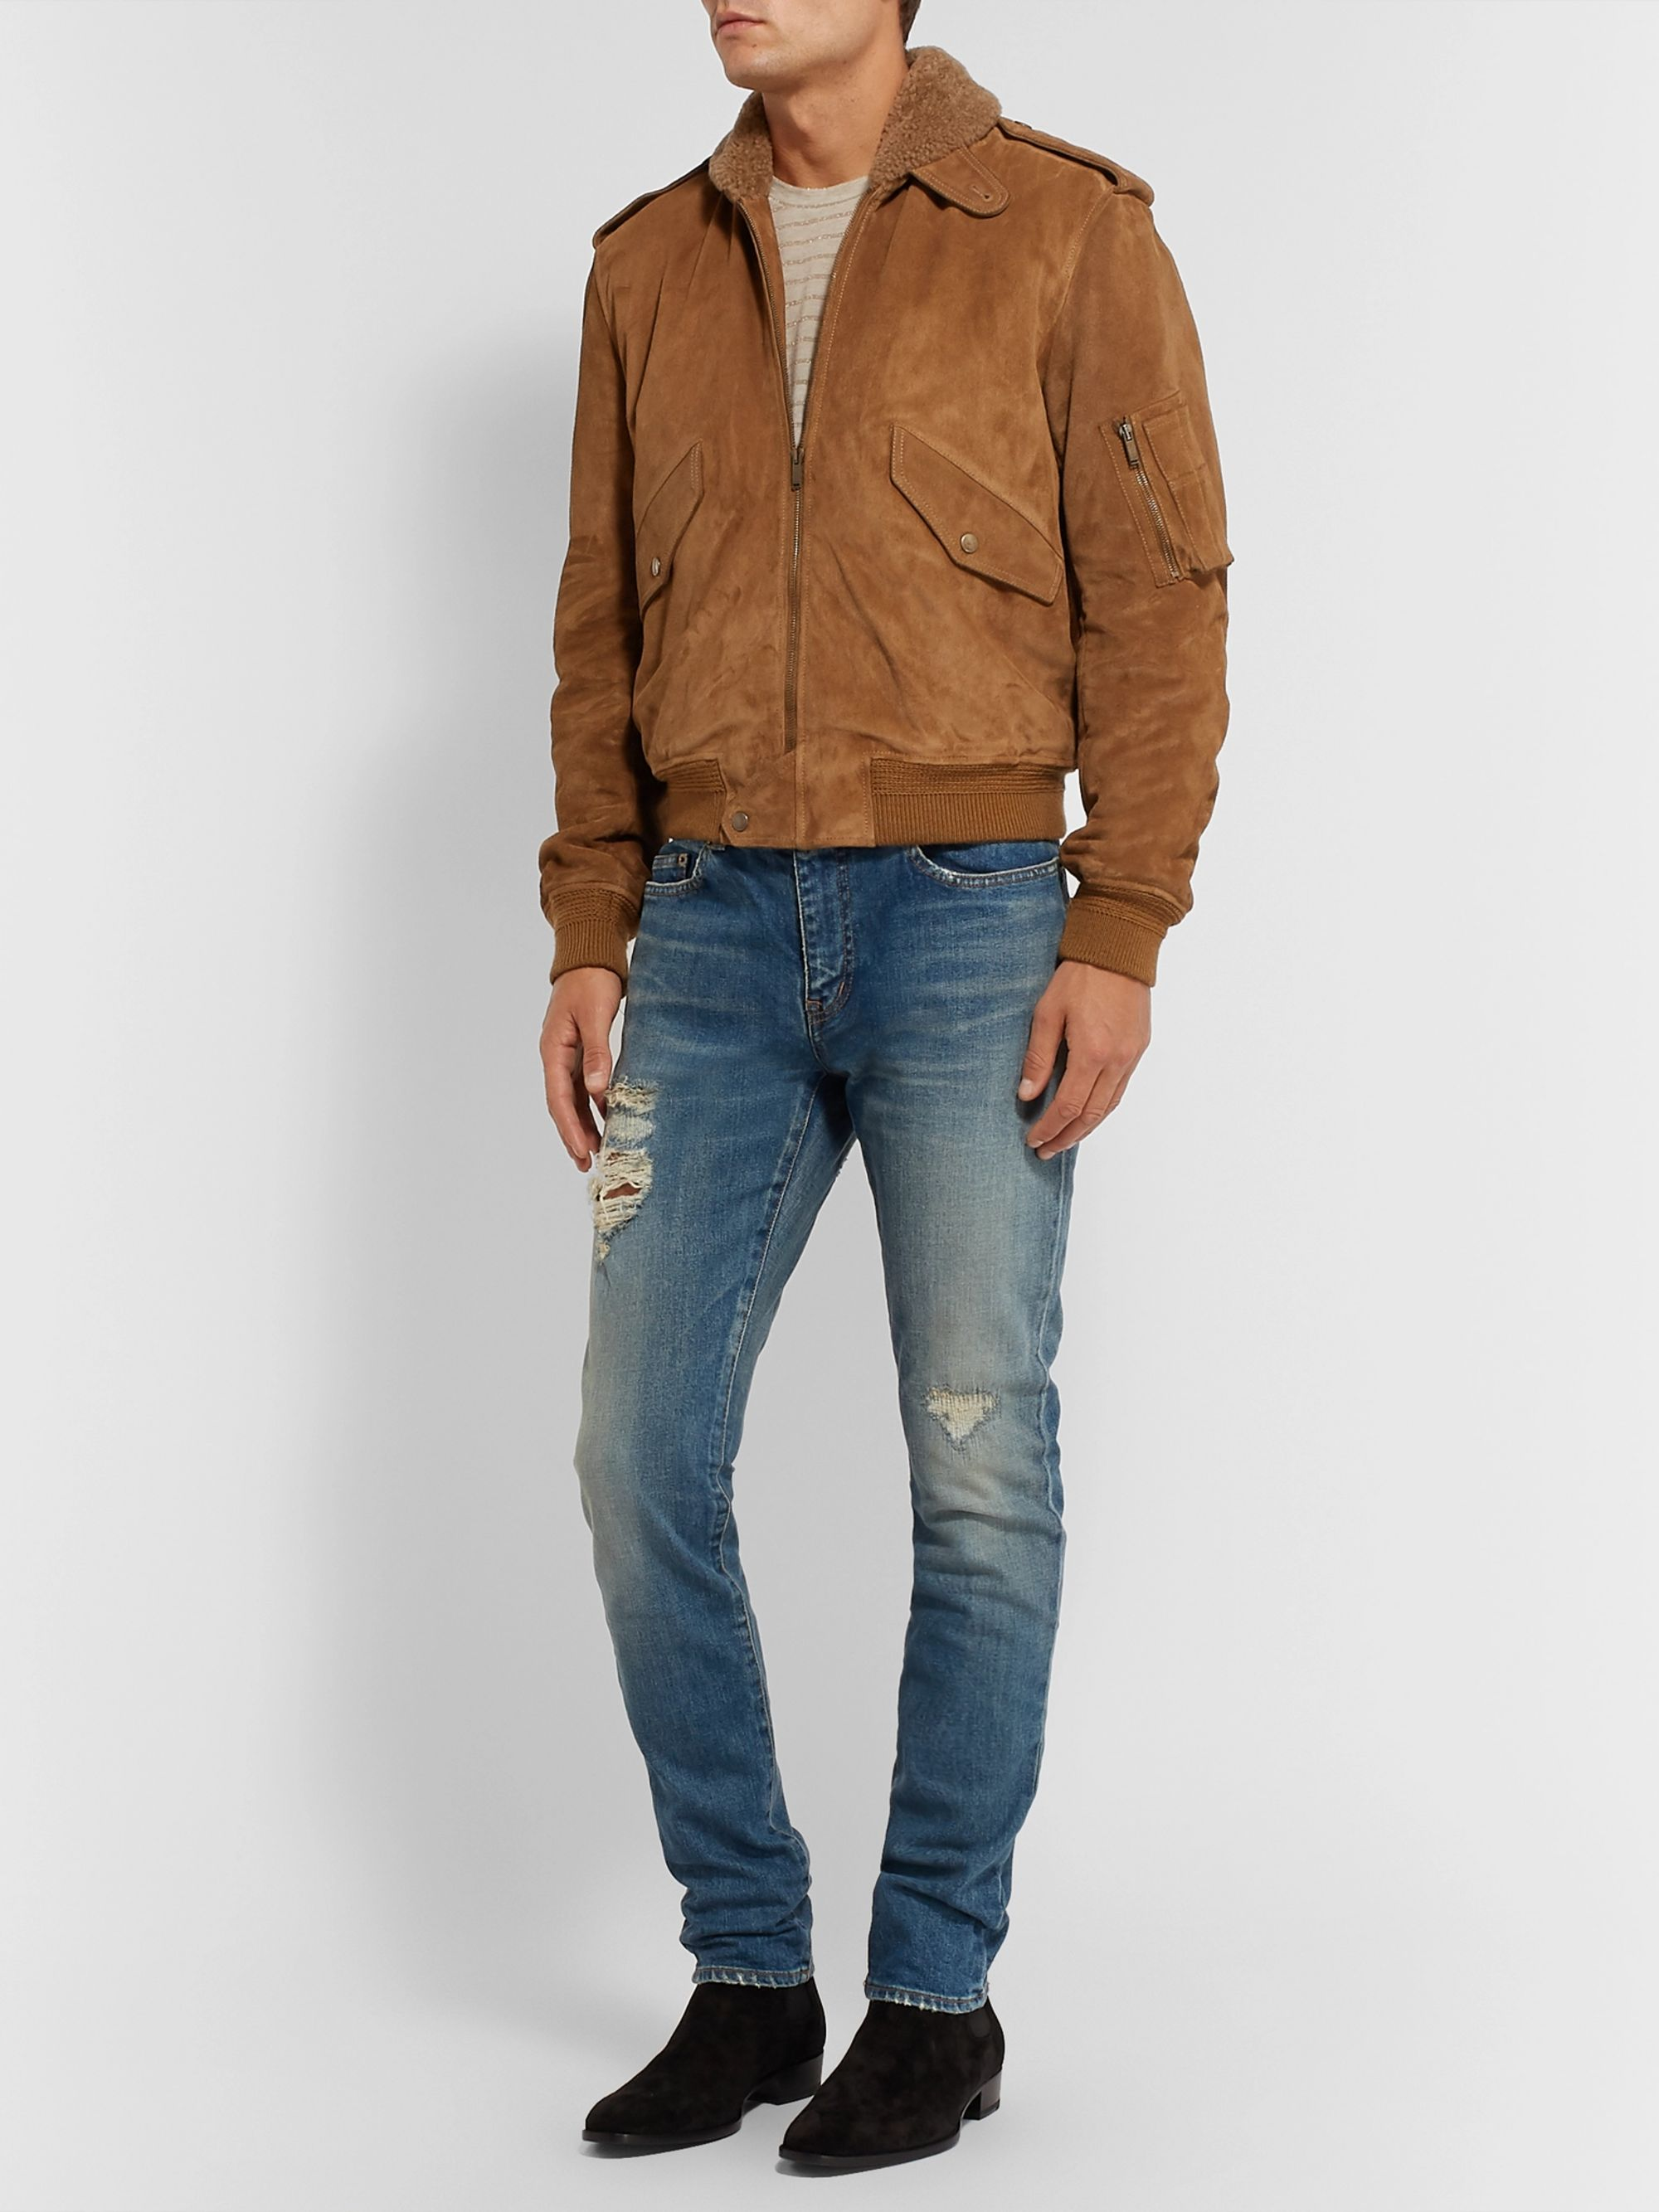 SAINT LAURENT Shearling-Lined Suede Aviator Jacket